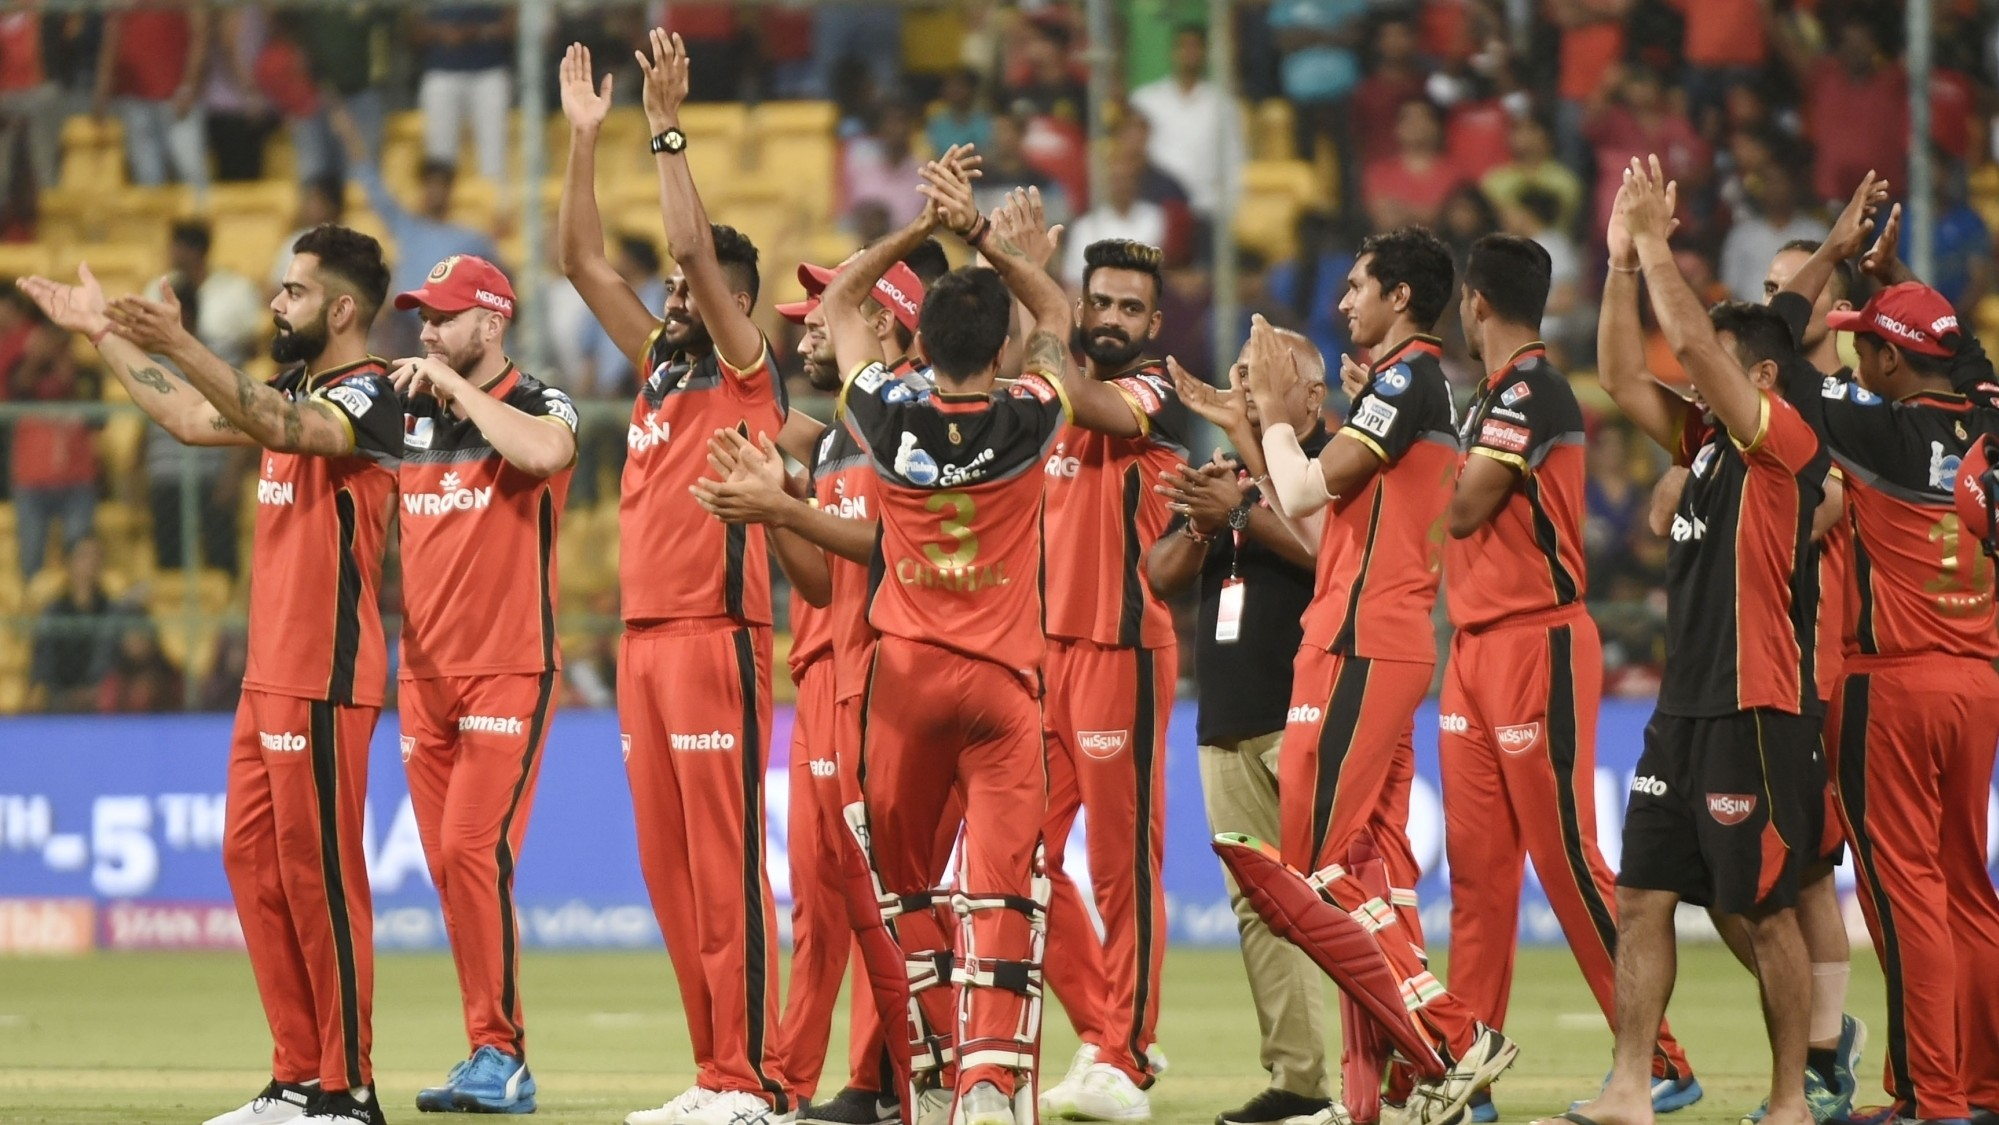 IPL 2019: Match 54, RCB v SRH - Statistical Highlights